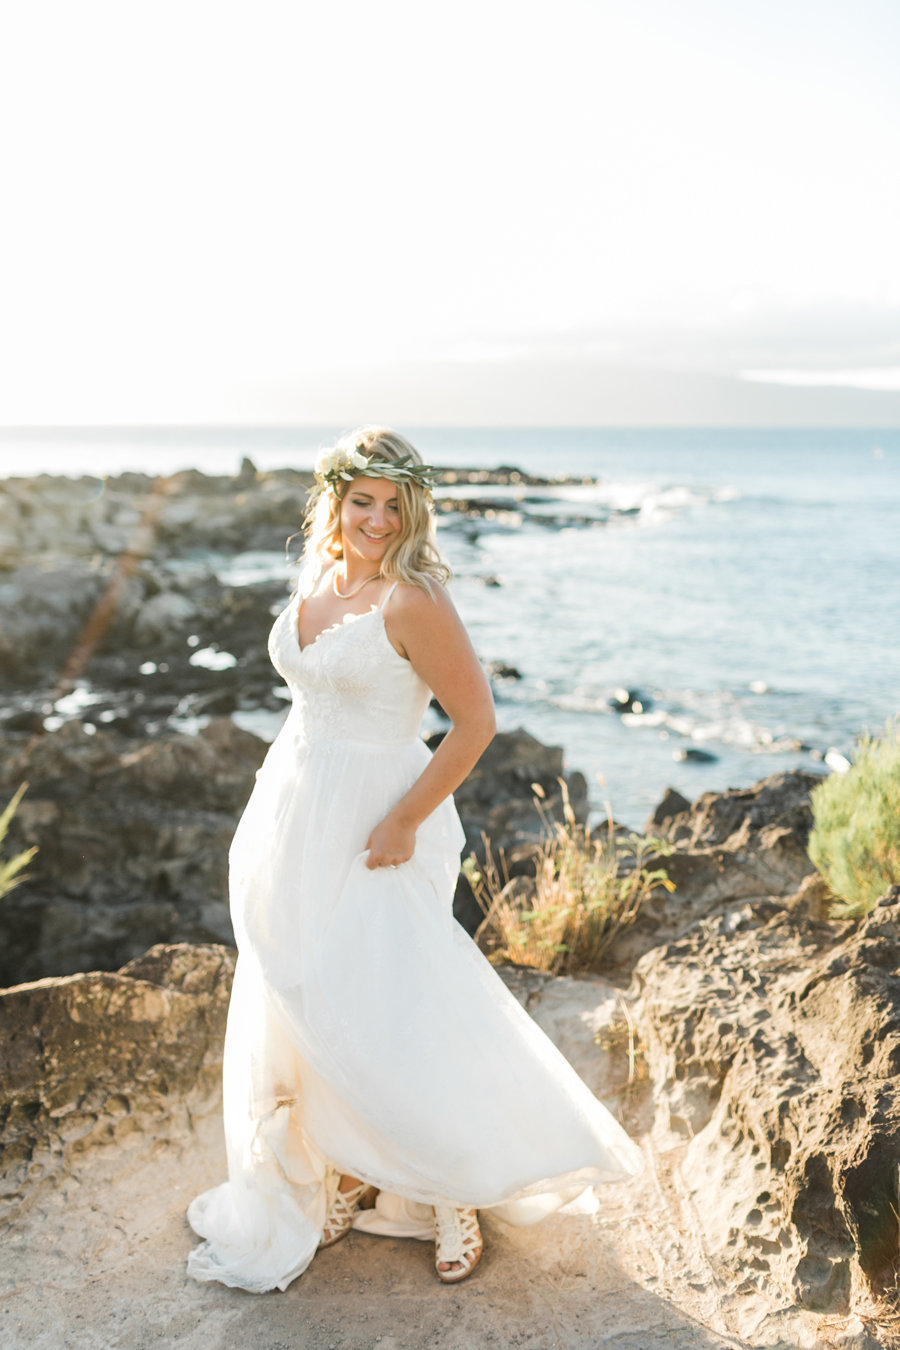 The-Ritz-Carlton-Kapalua-Maui-Wedding-Caitlin-Cathey-Photo-080